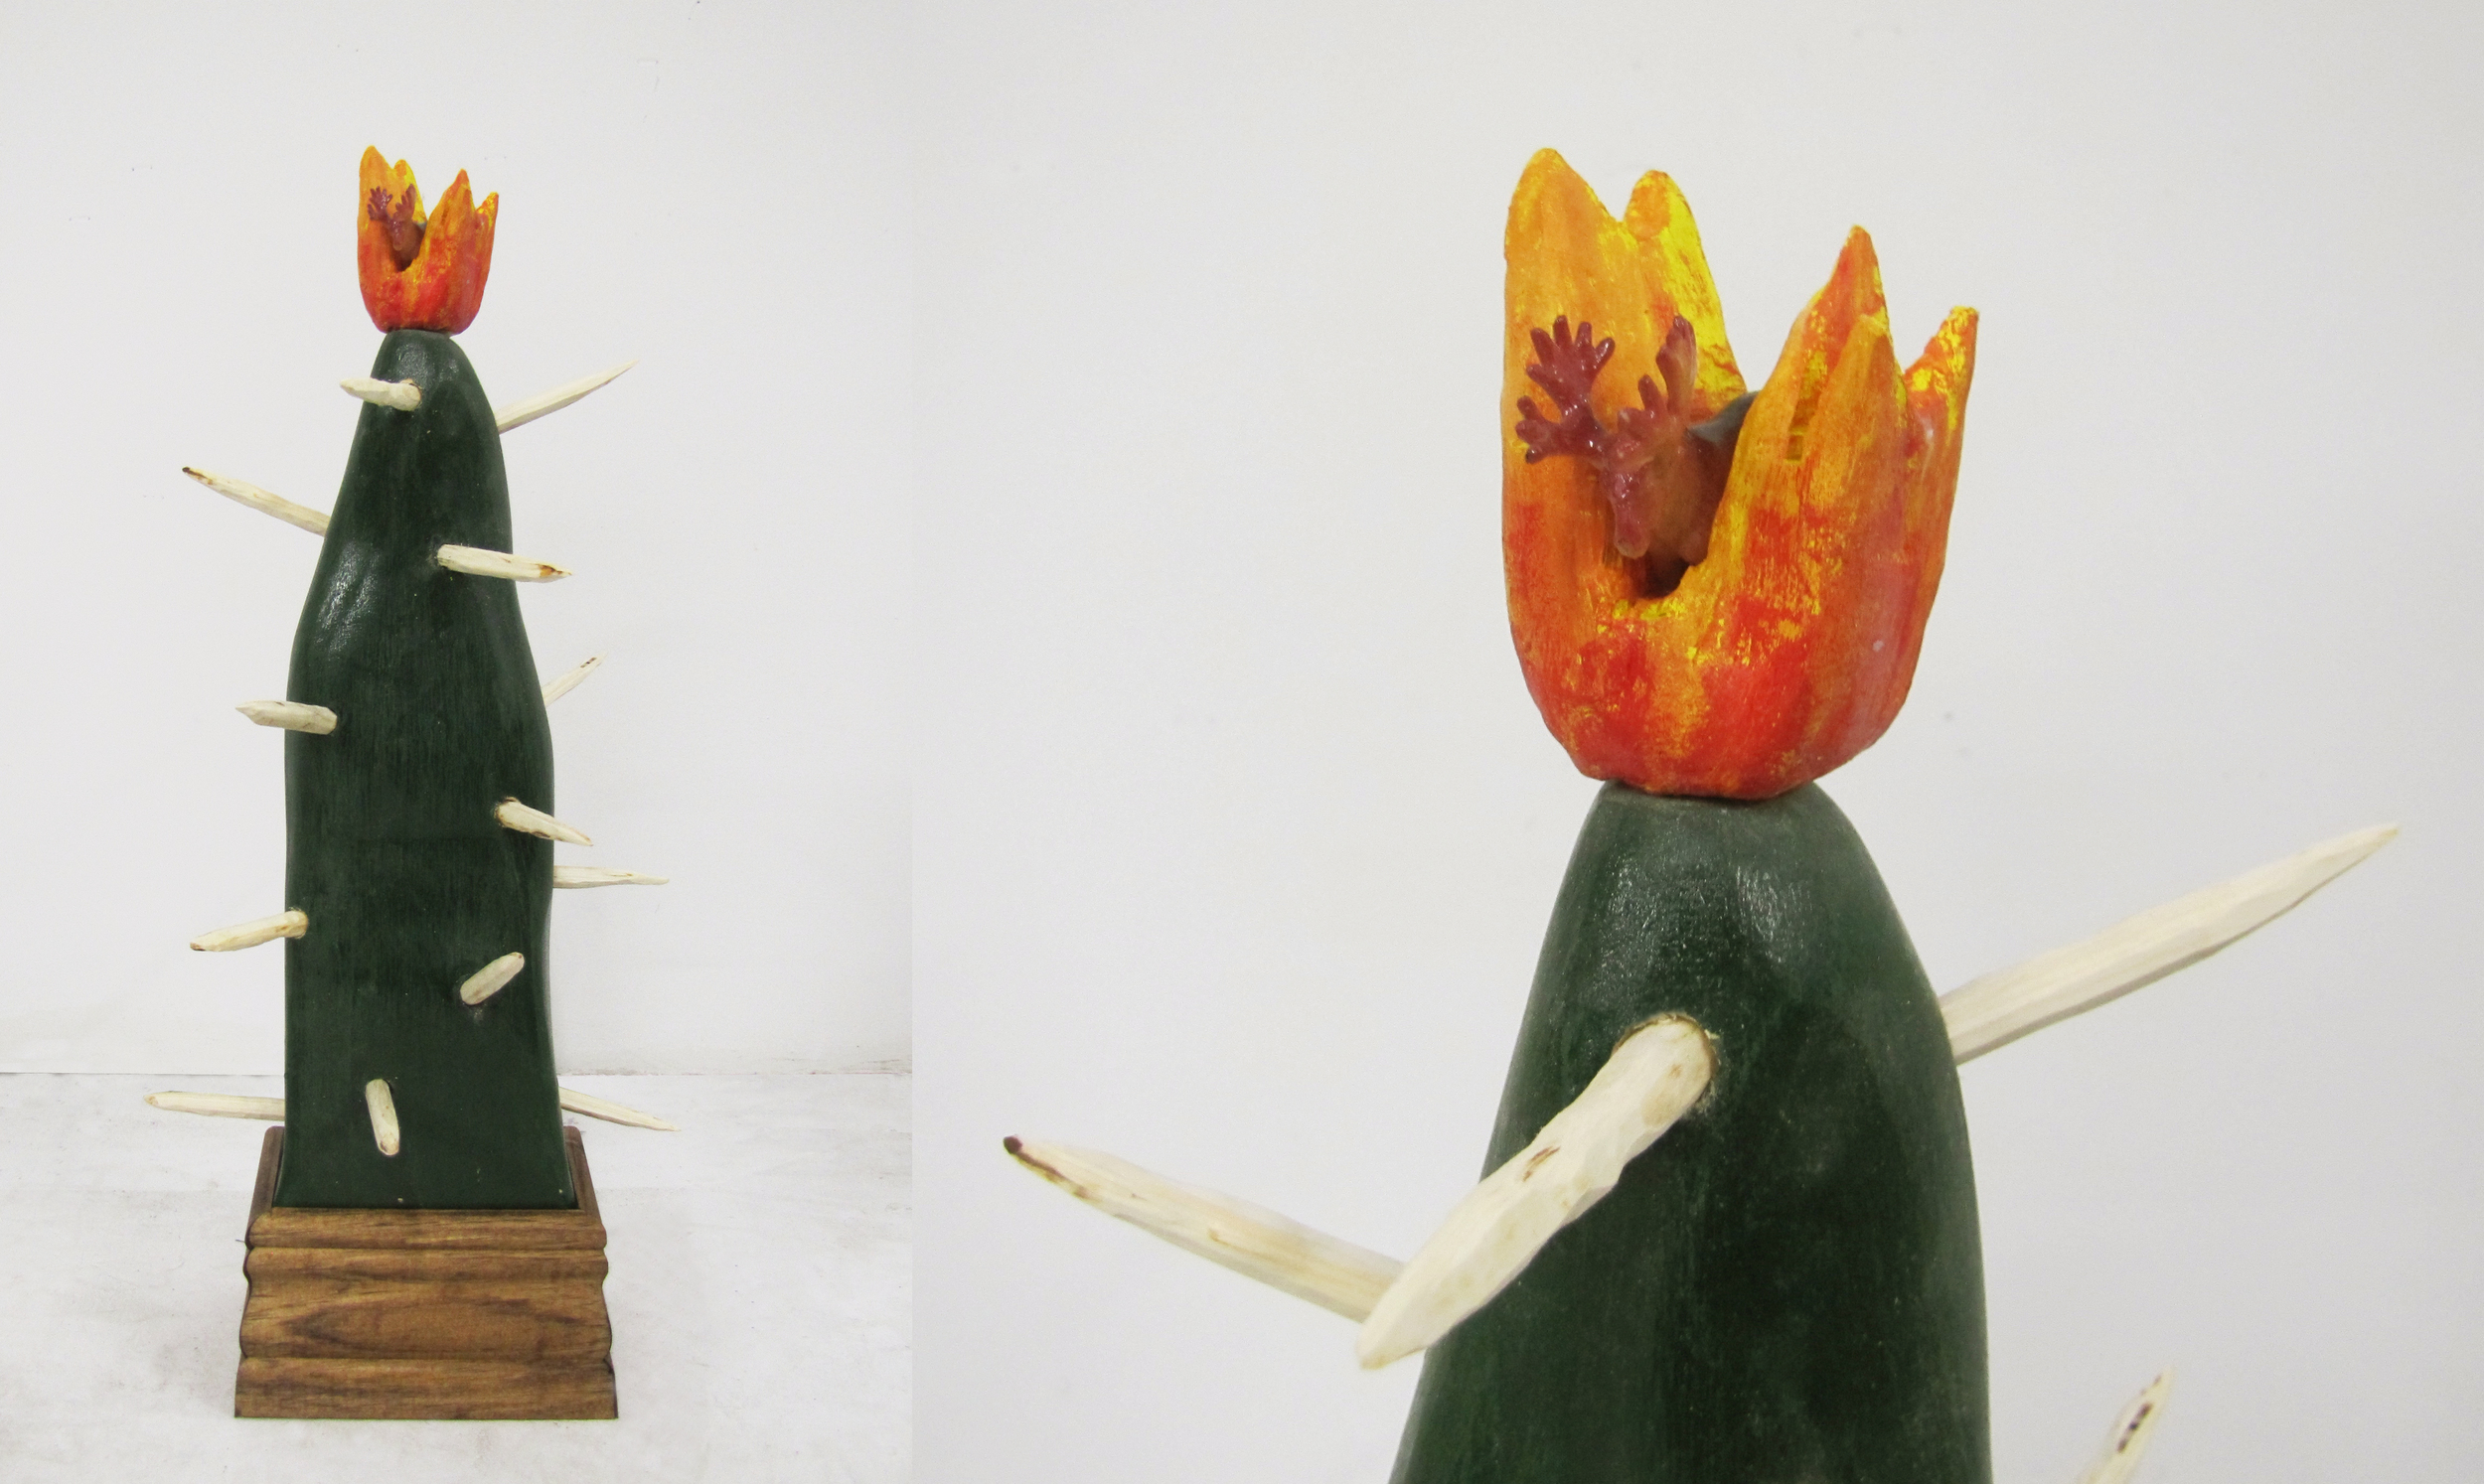 Cactus-Mountain, Moose-fire.   Wood, acrylic paint and plastic moose  18 x 7 x 7 inches